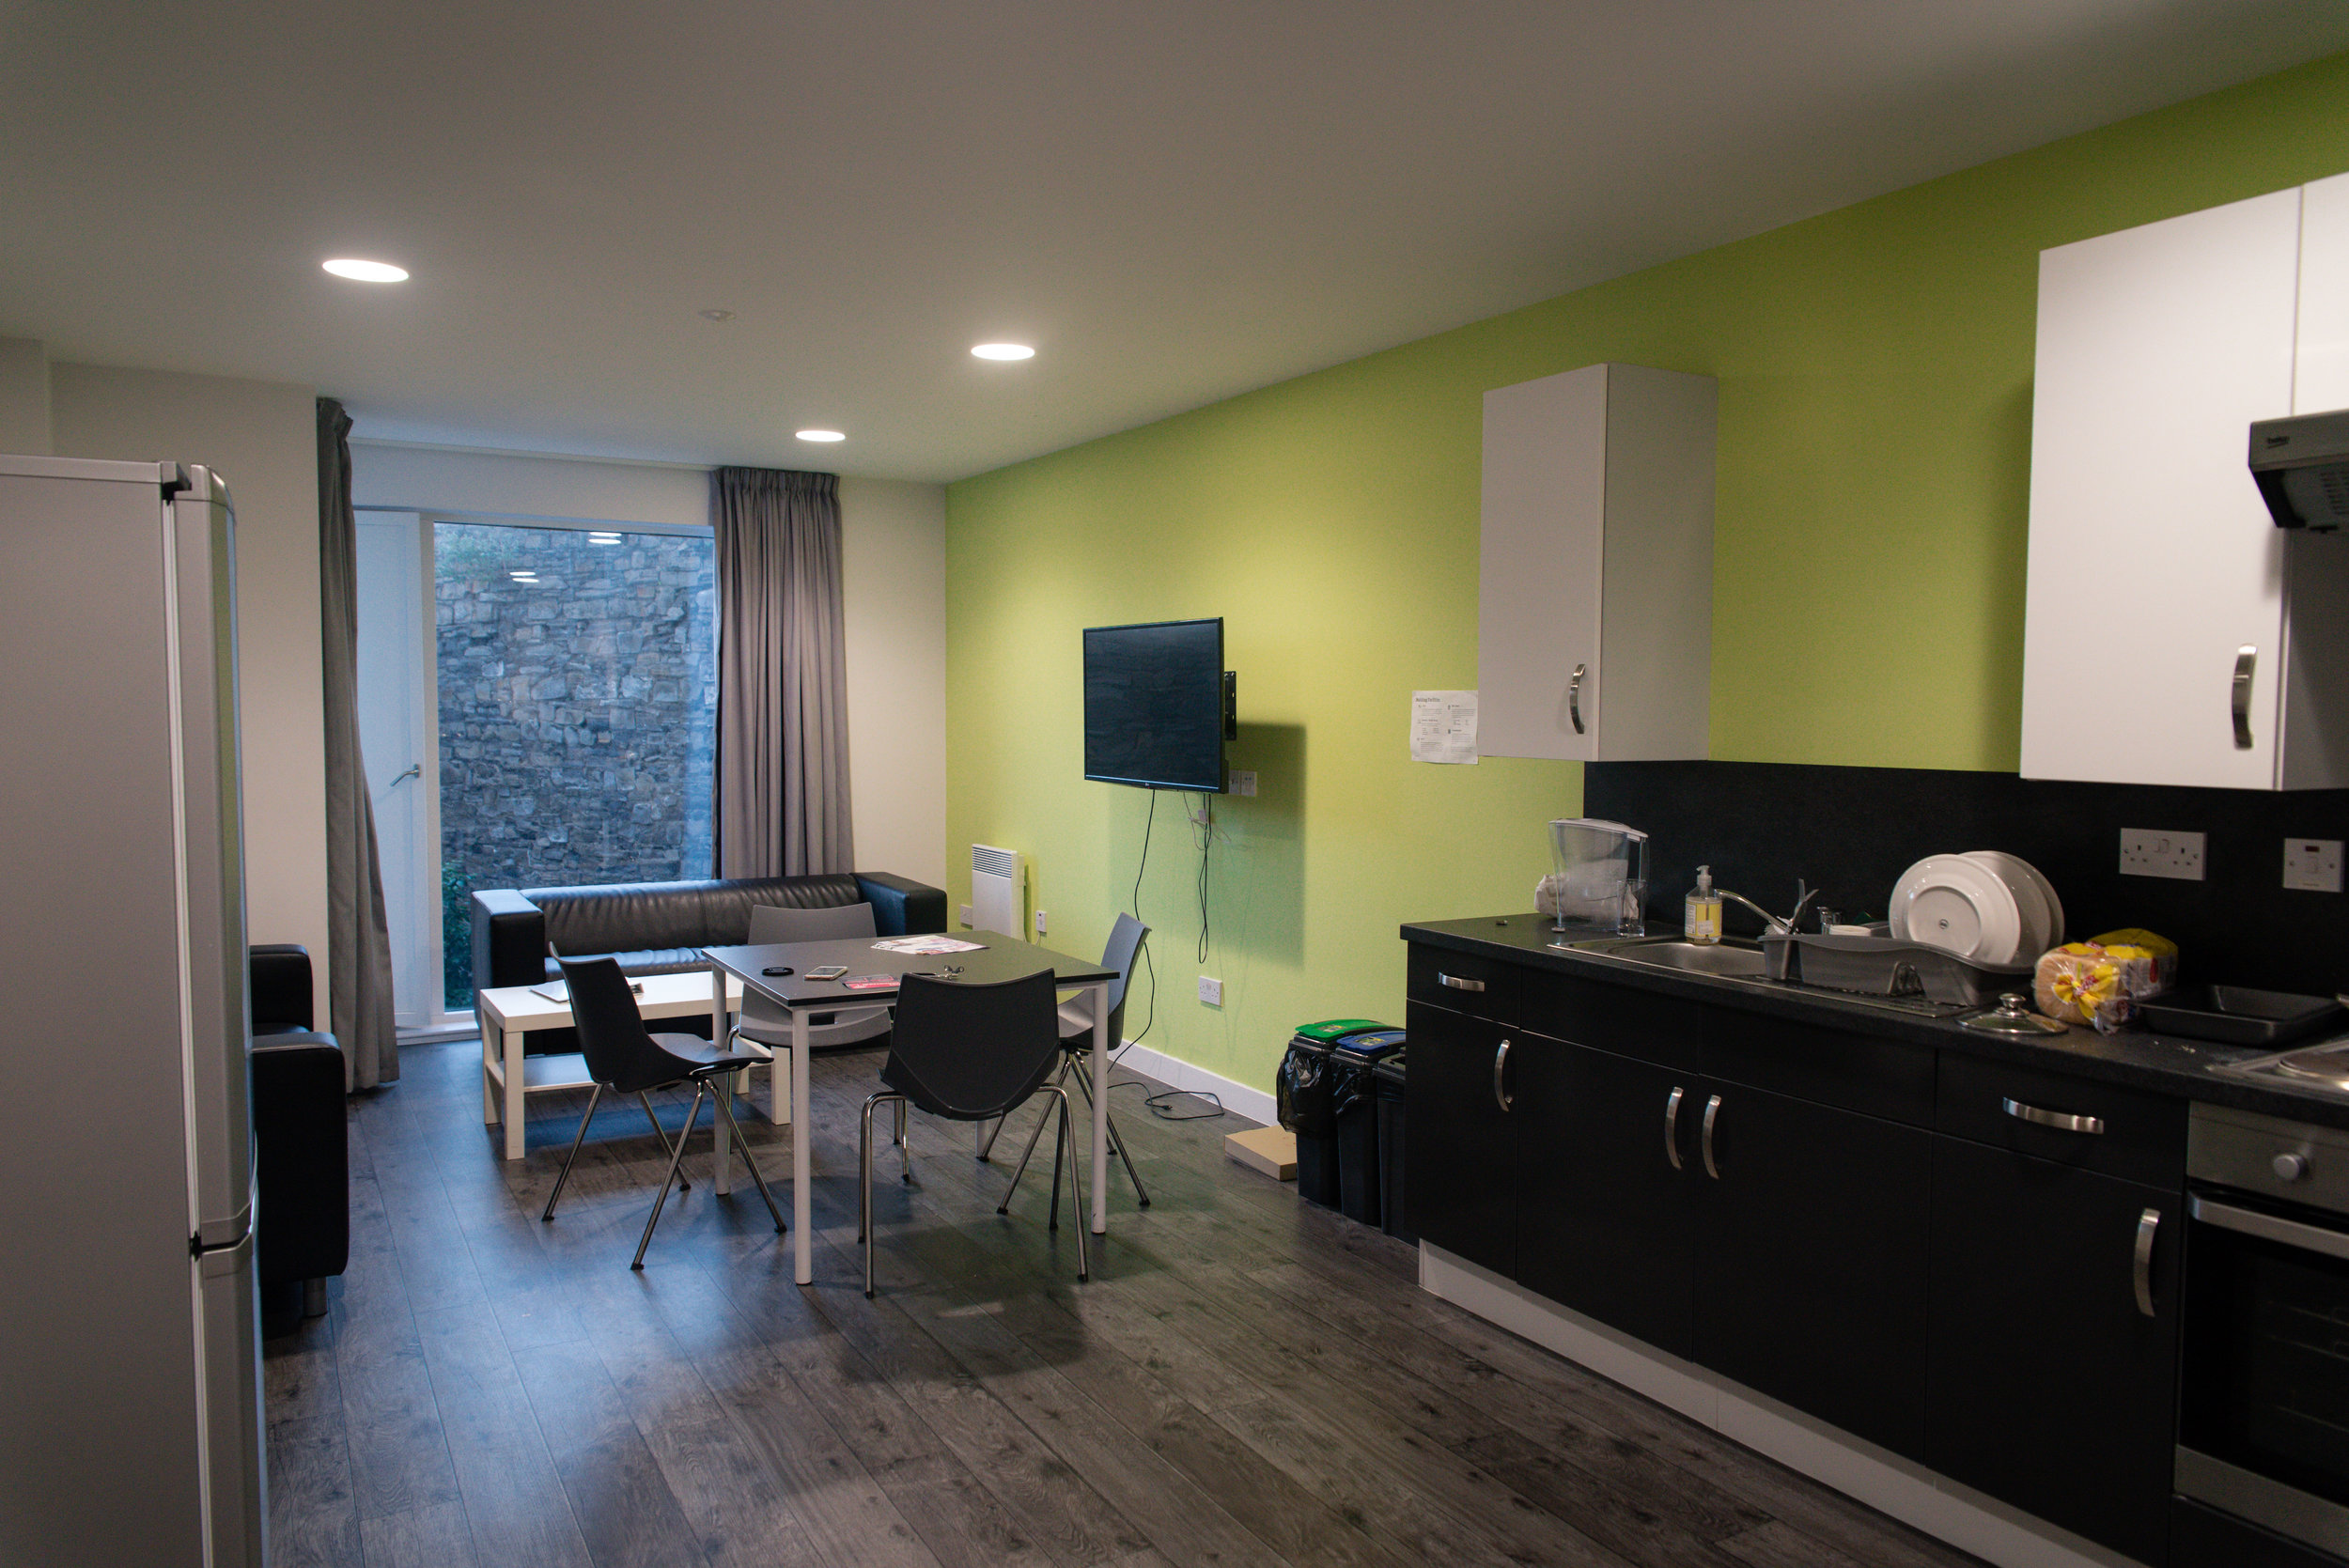 Common area including a kitchen!